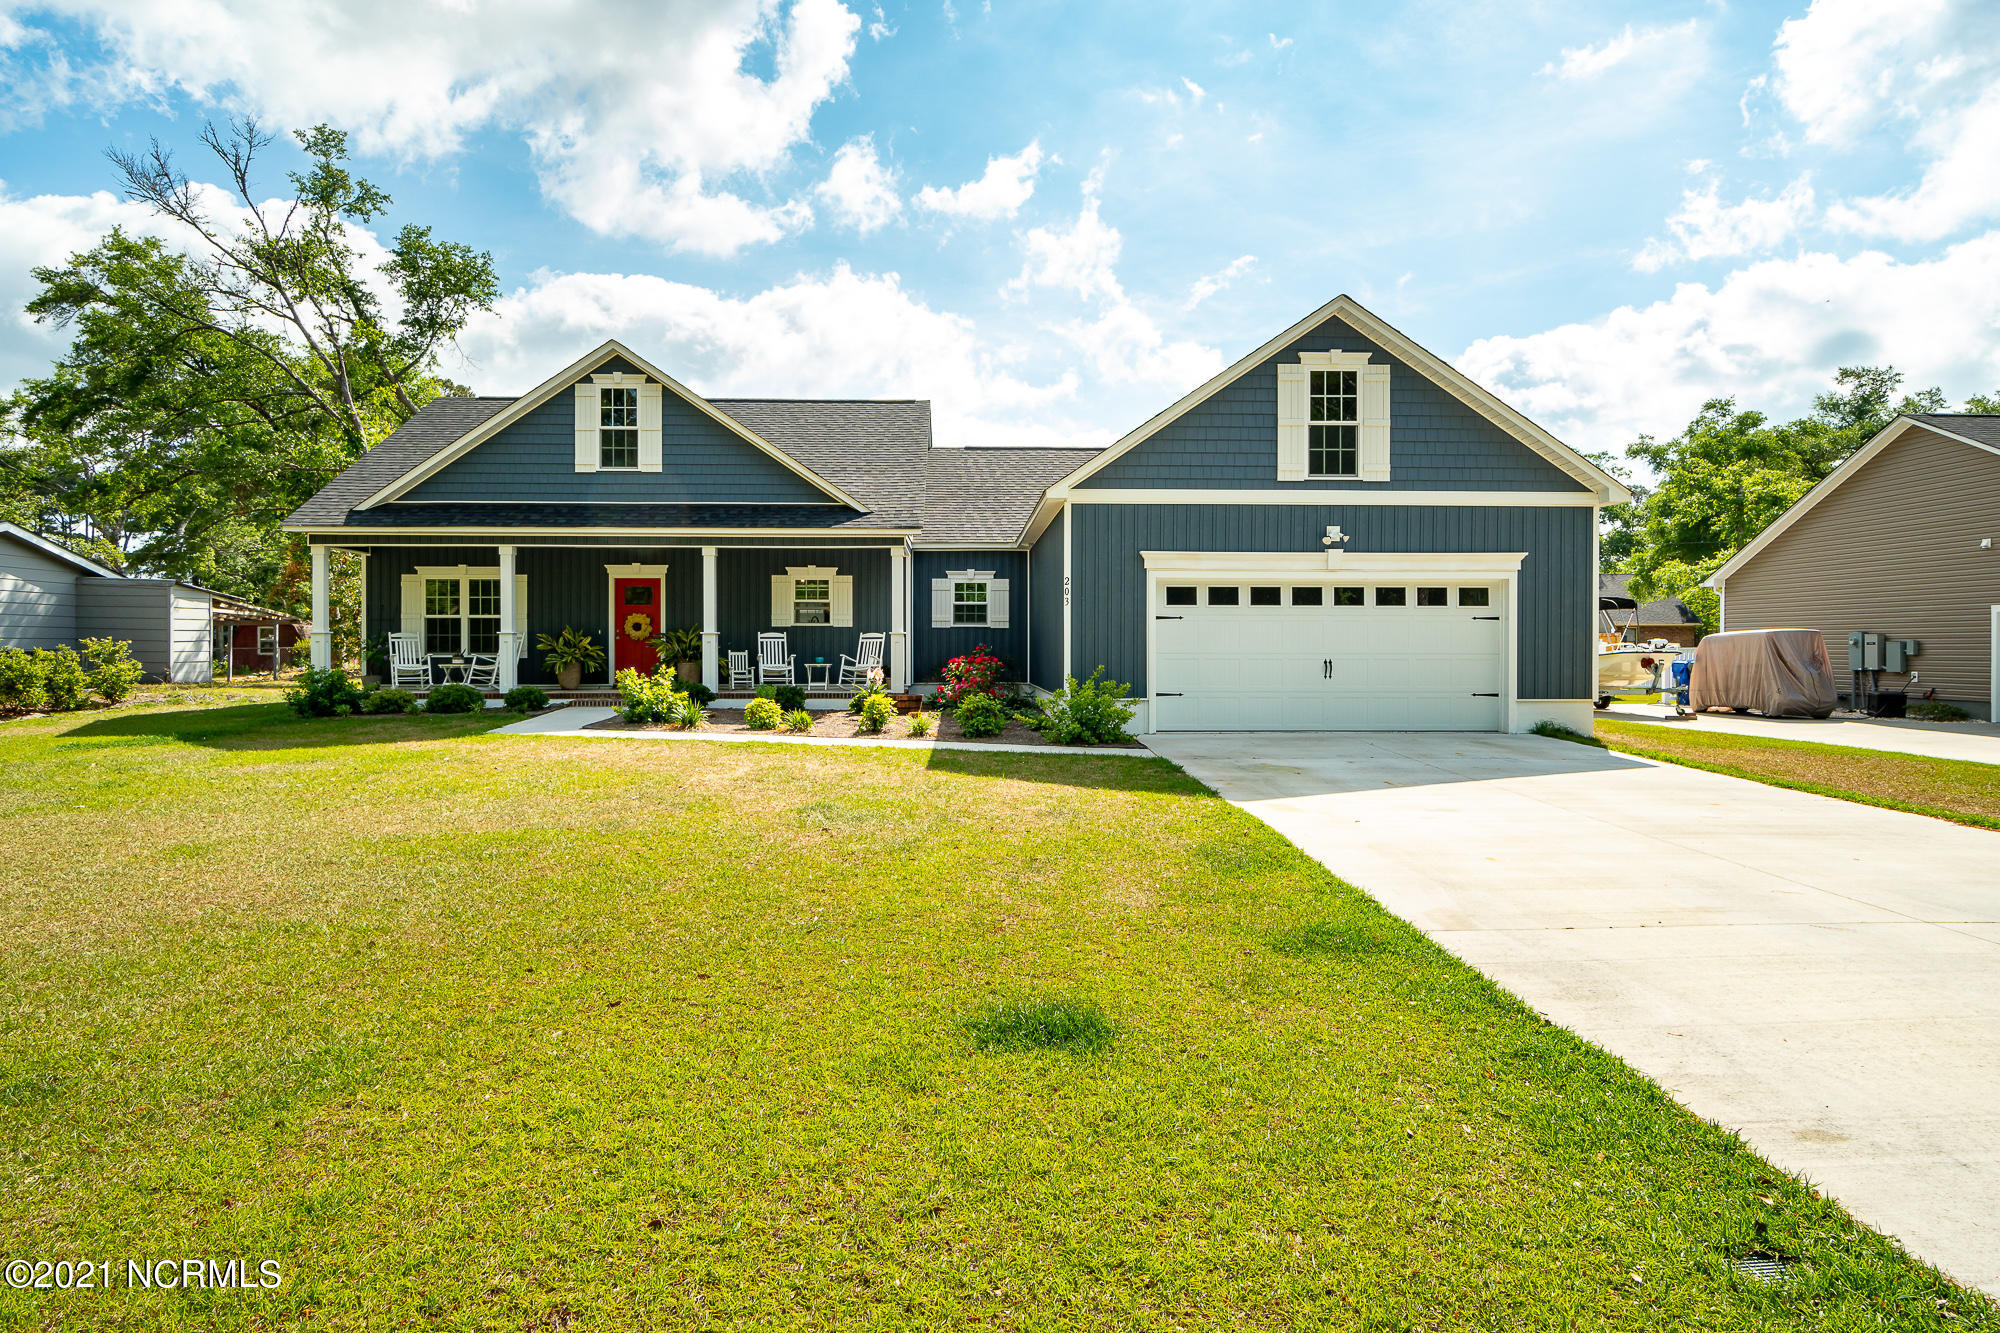 LOCATION, LOCATION, LOCATION! Like New.  Built 2019. Over 2000 HSF ranch in Cape Carteret and around the corner from boat ramp!   This is a large 3 bedroom and 2 bath with split plan and open concept. Huge master with en suite. Lots of storage and a butler/ laundry room pantry. Granite and stainless in this fantastic kitchen space. No carpet, LVP through out and tile in baths.  Fisherman's storage area  and screened porch. Make your appointment now.  Won't last on market long.